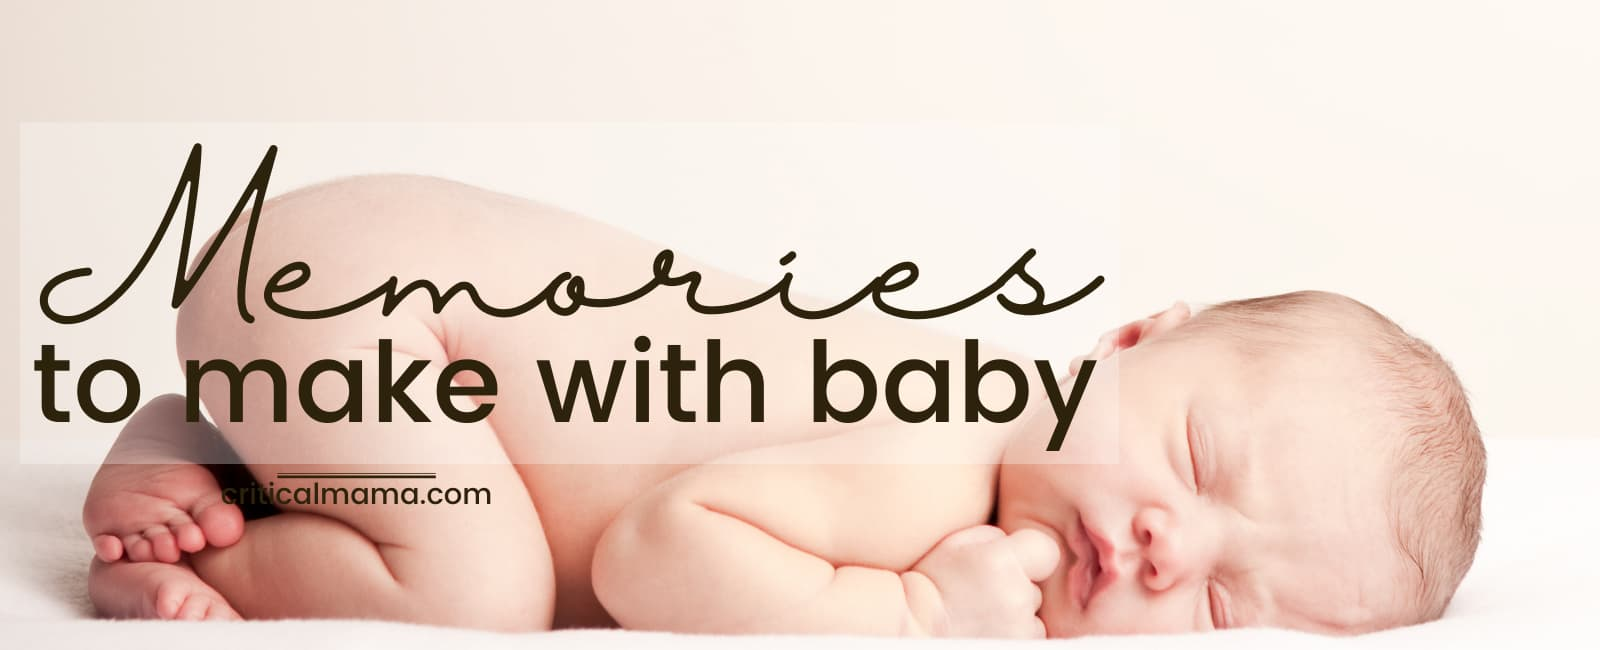 Newborn Baby - Memories To Make With Baby